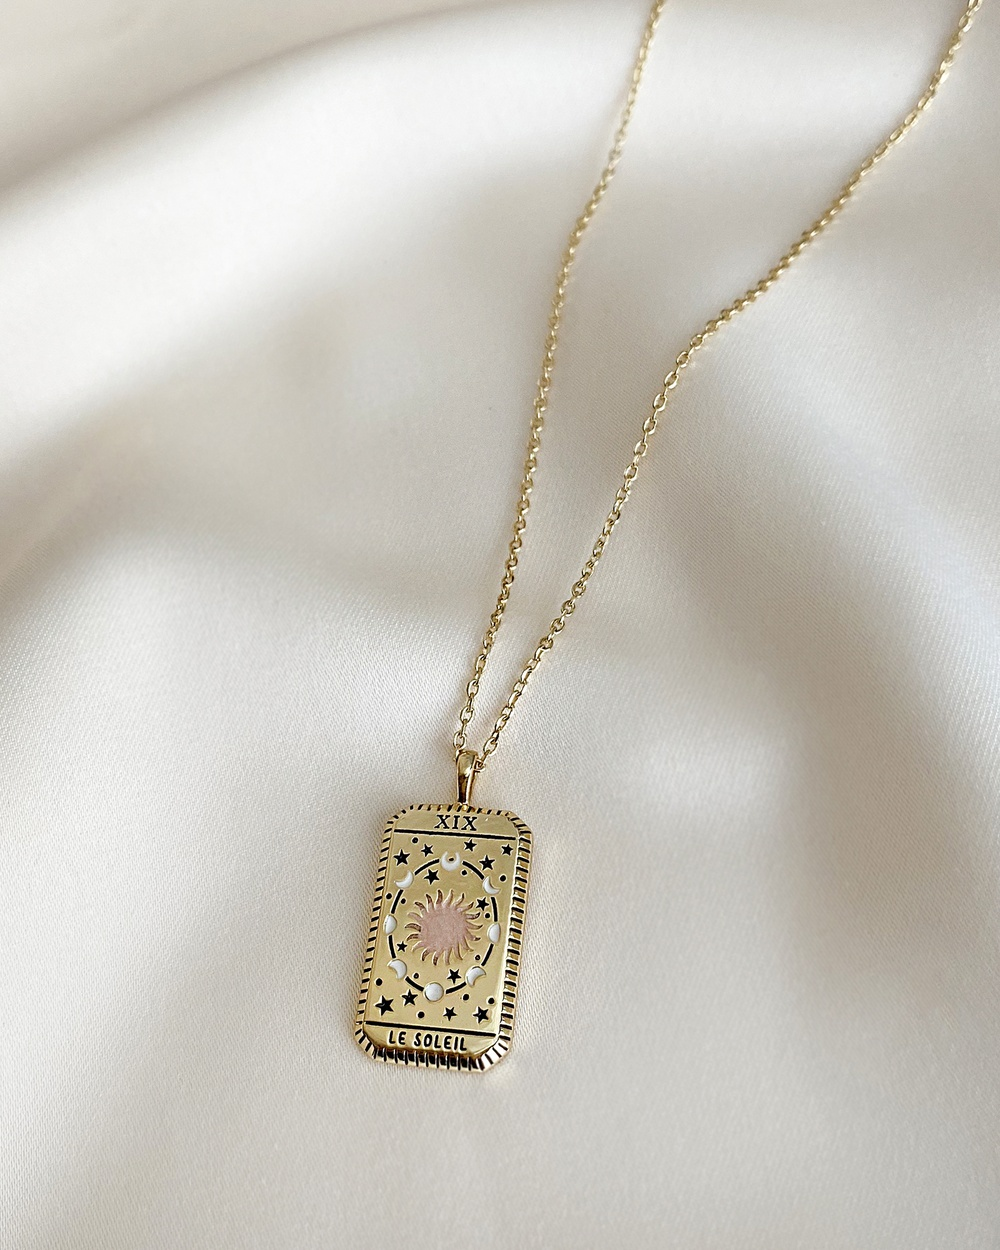 Wanderlust + Co Le Soleil Gold Tarot Necklace Jewellery Gold